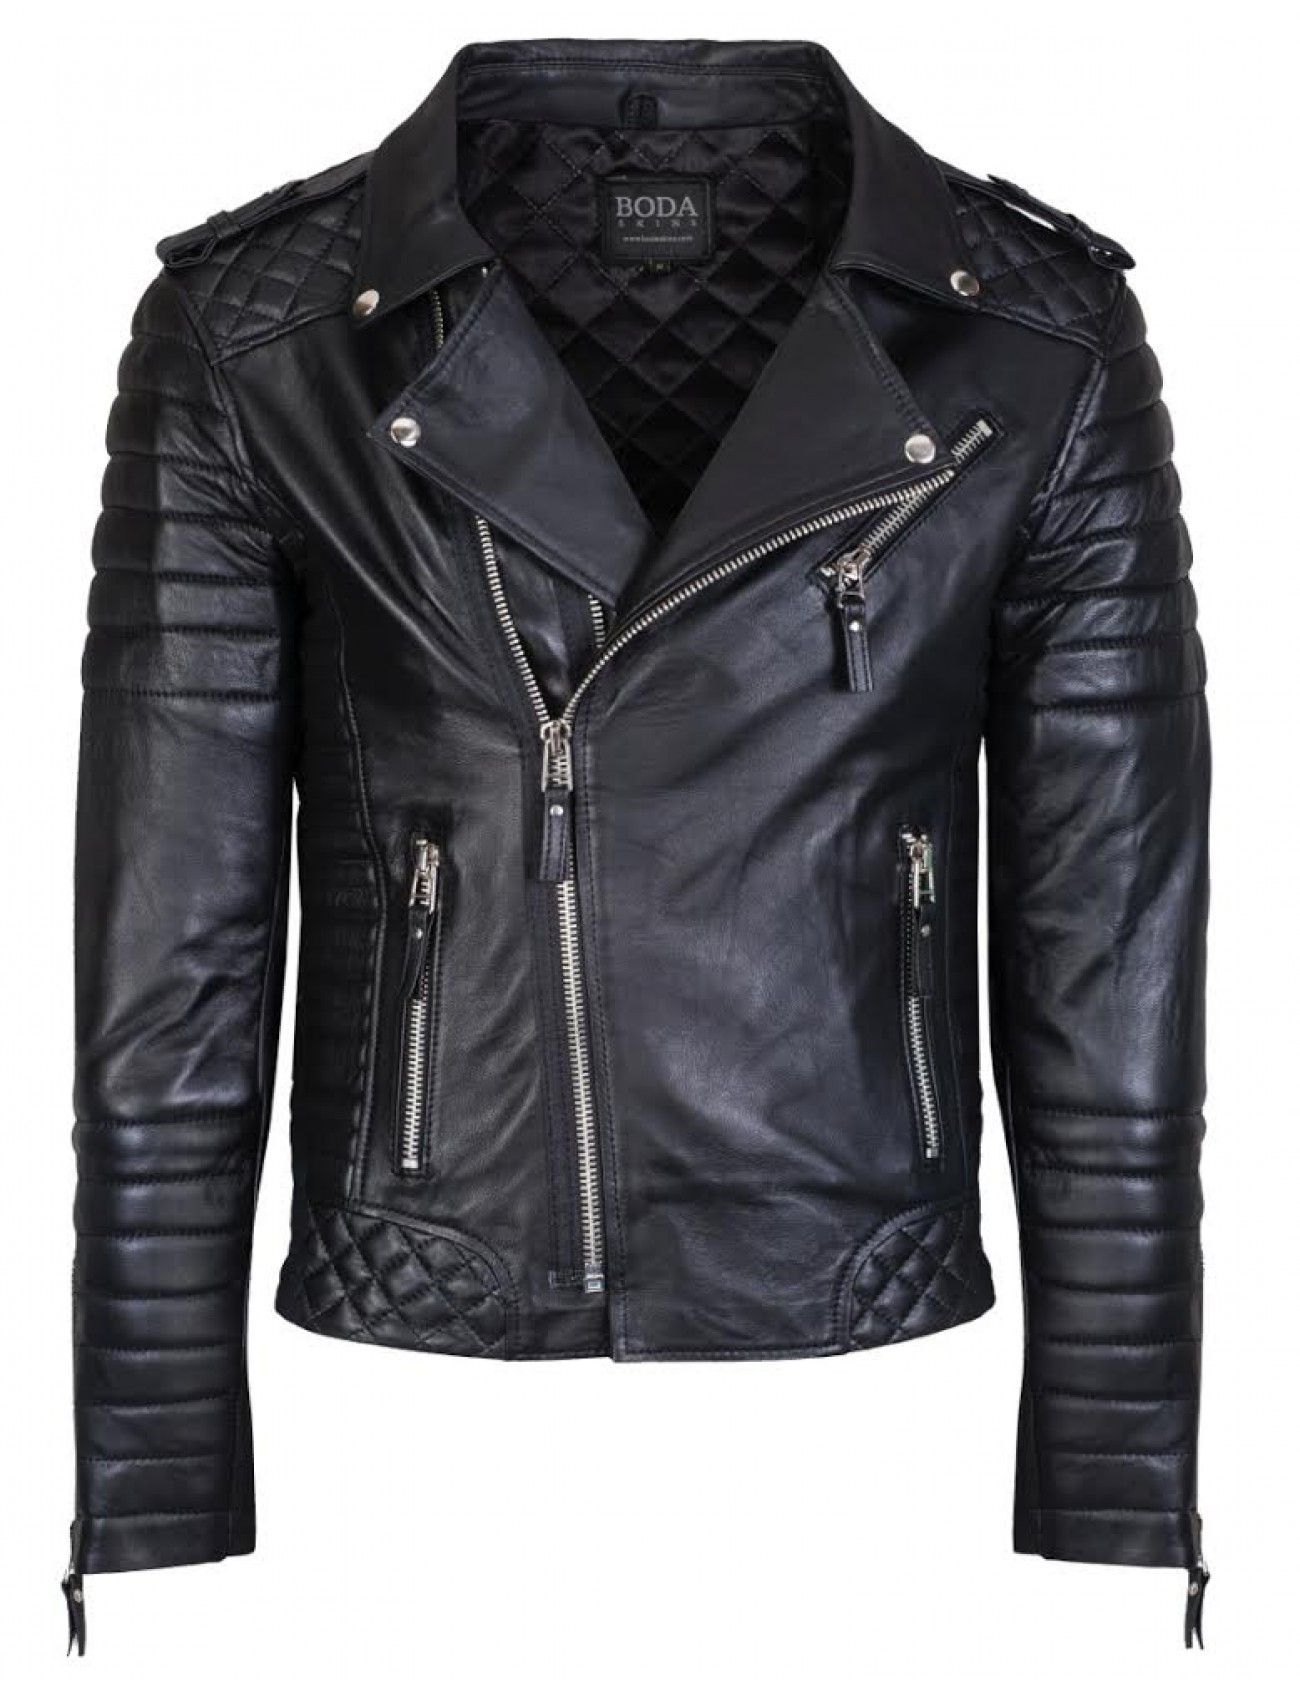 BODA SKINS Kay Michaels Quilted Biker ($660) | Apparel | Pinterest ...